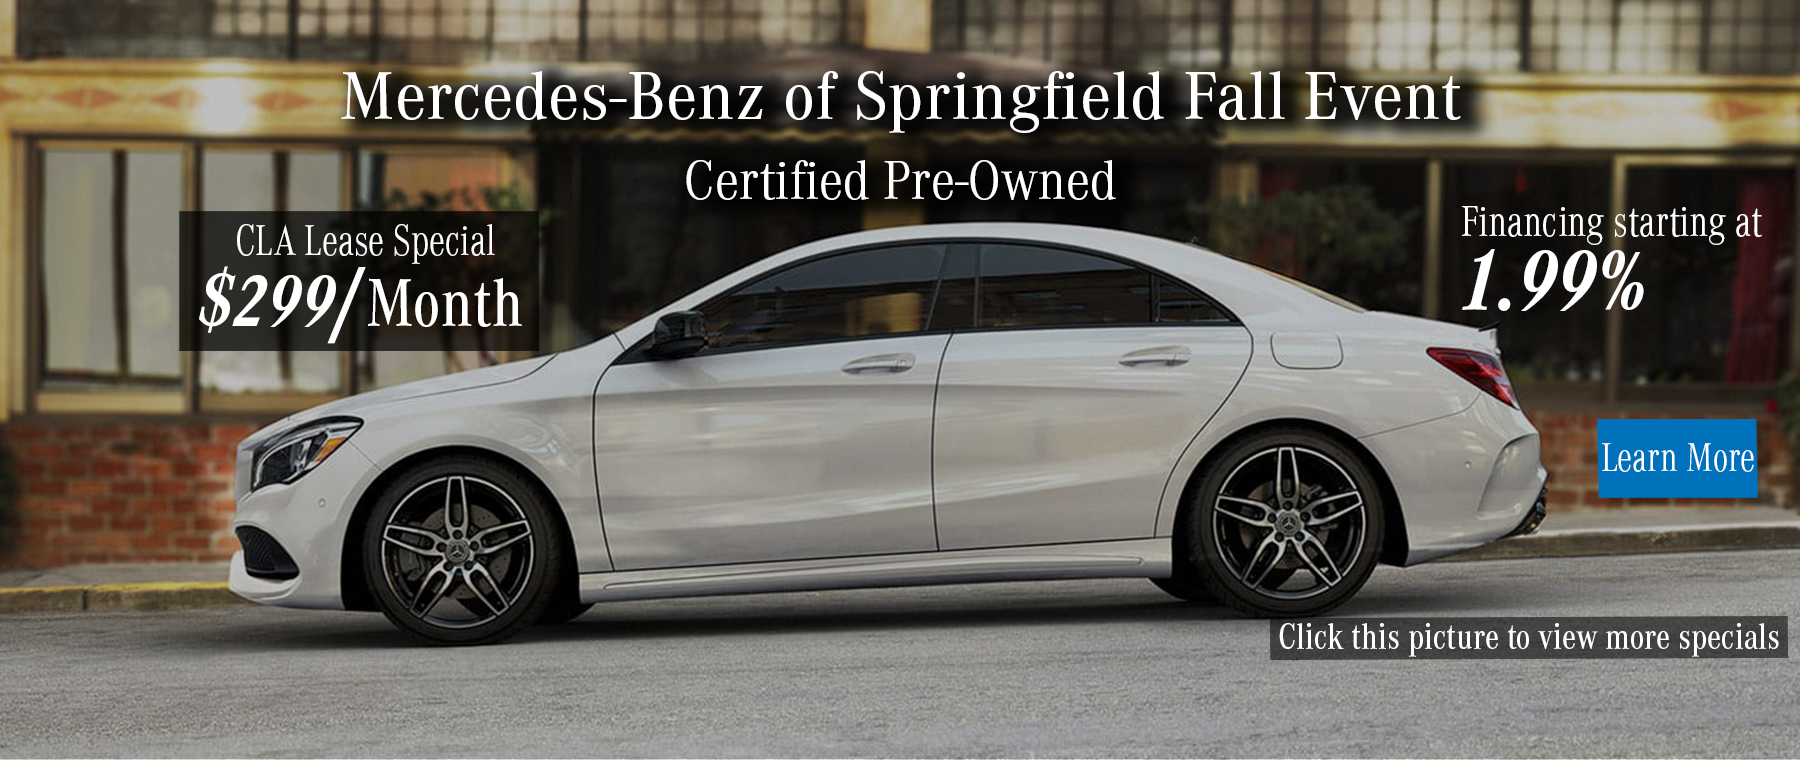 CPO Fall Event - CLA Lease starting at $299 and 1.99% APR